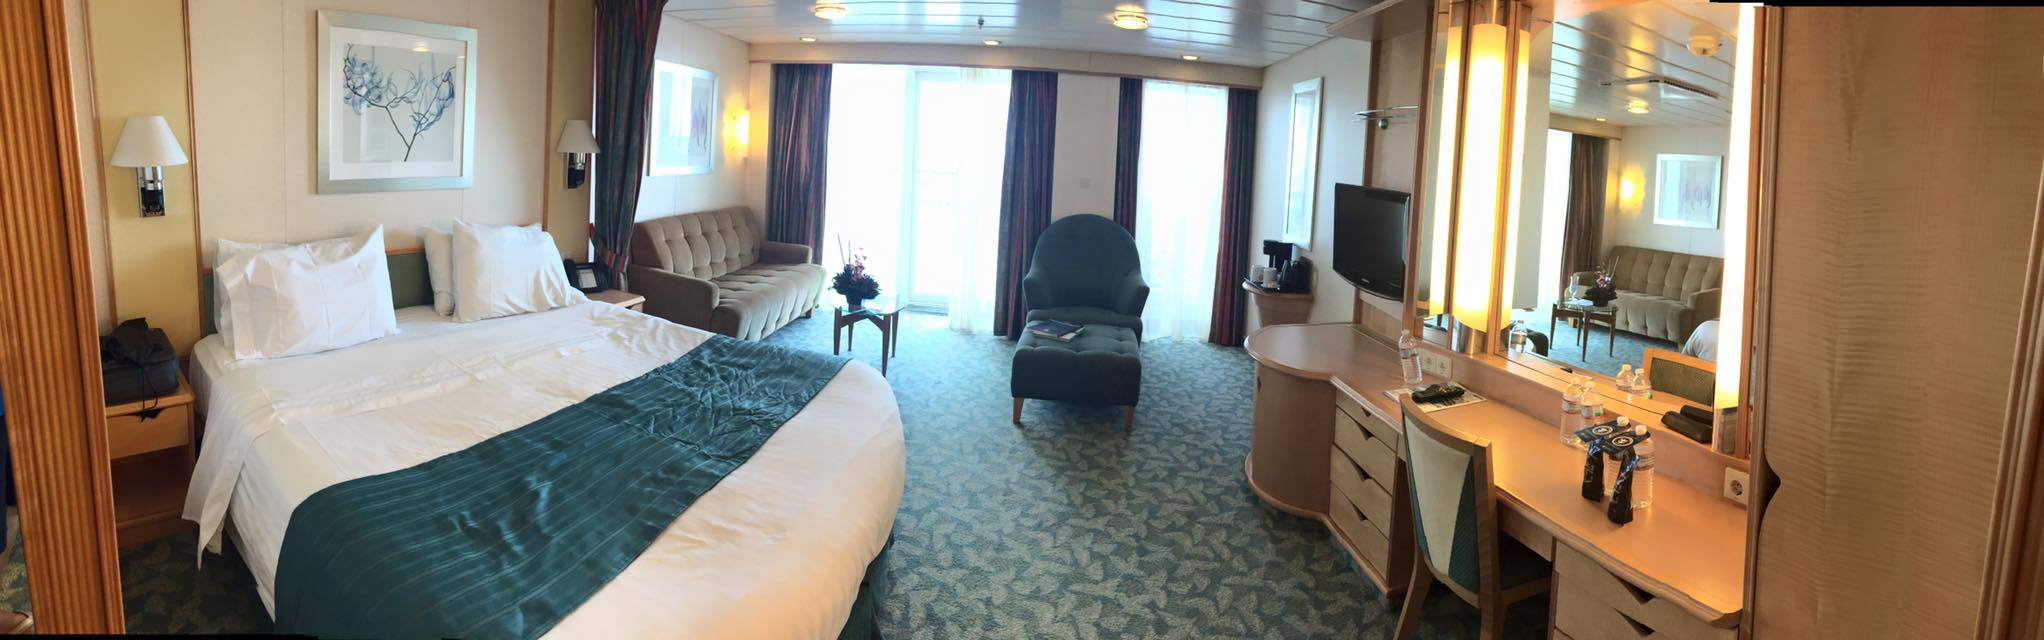 Photo Tour Of Junior Suite On Independence Of The Seas